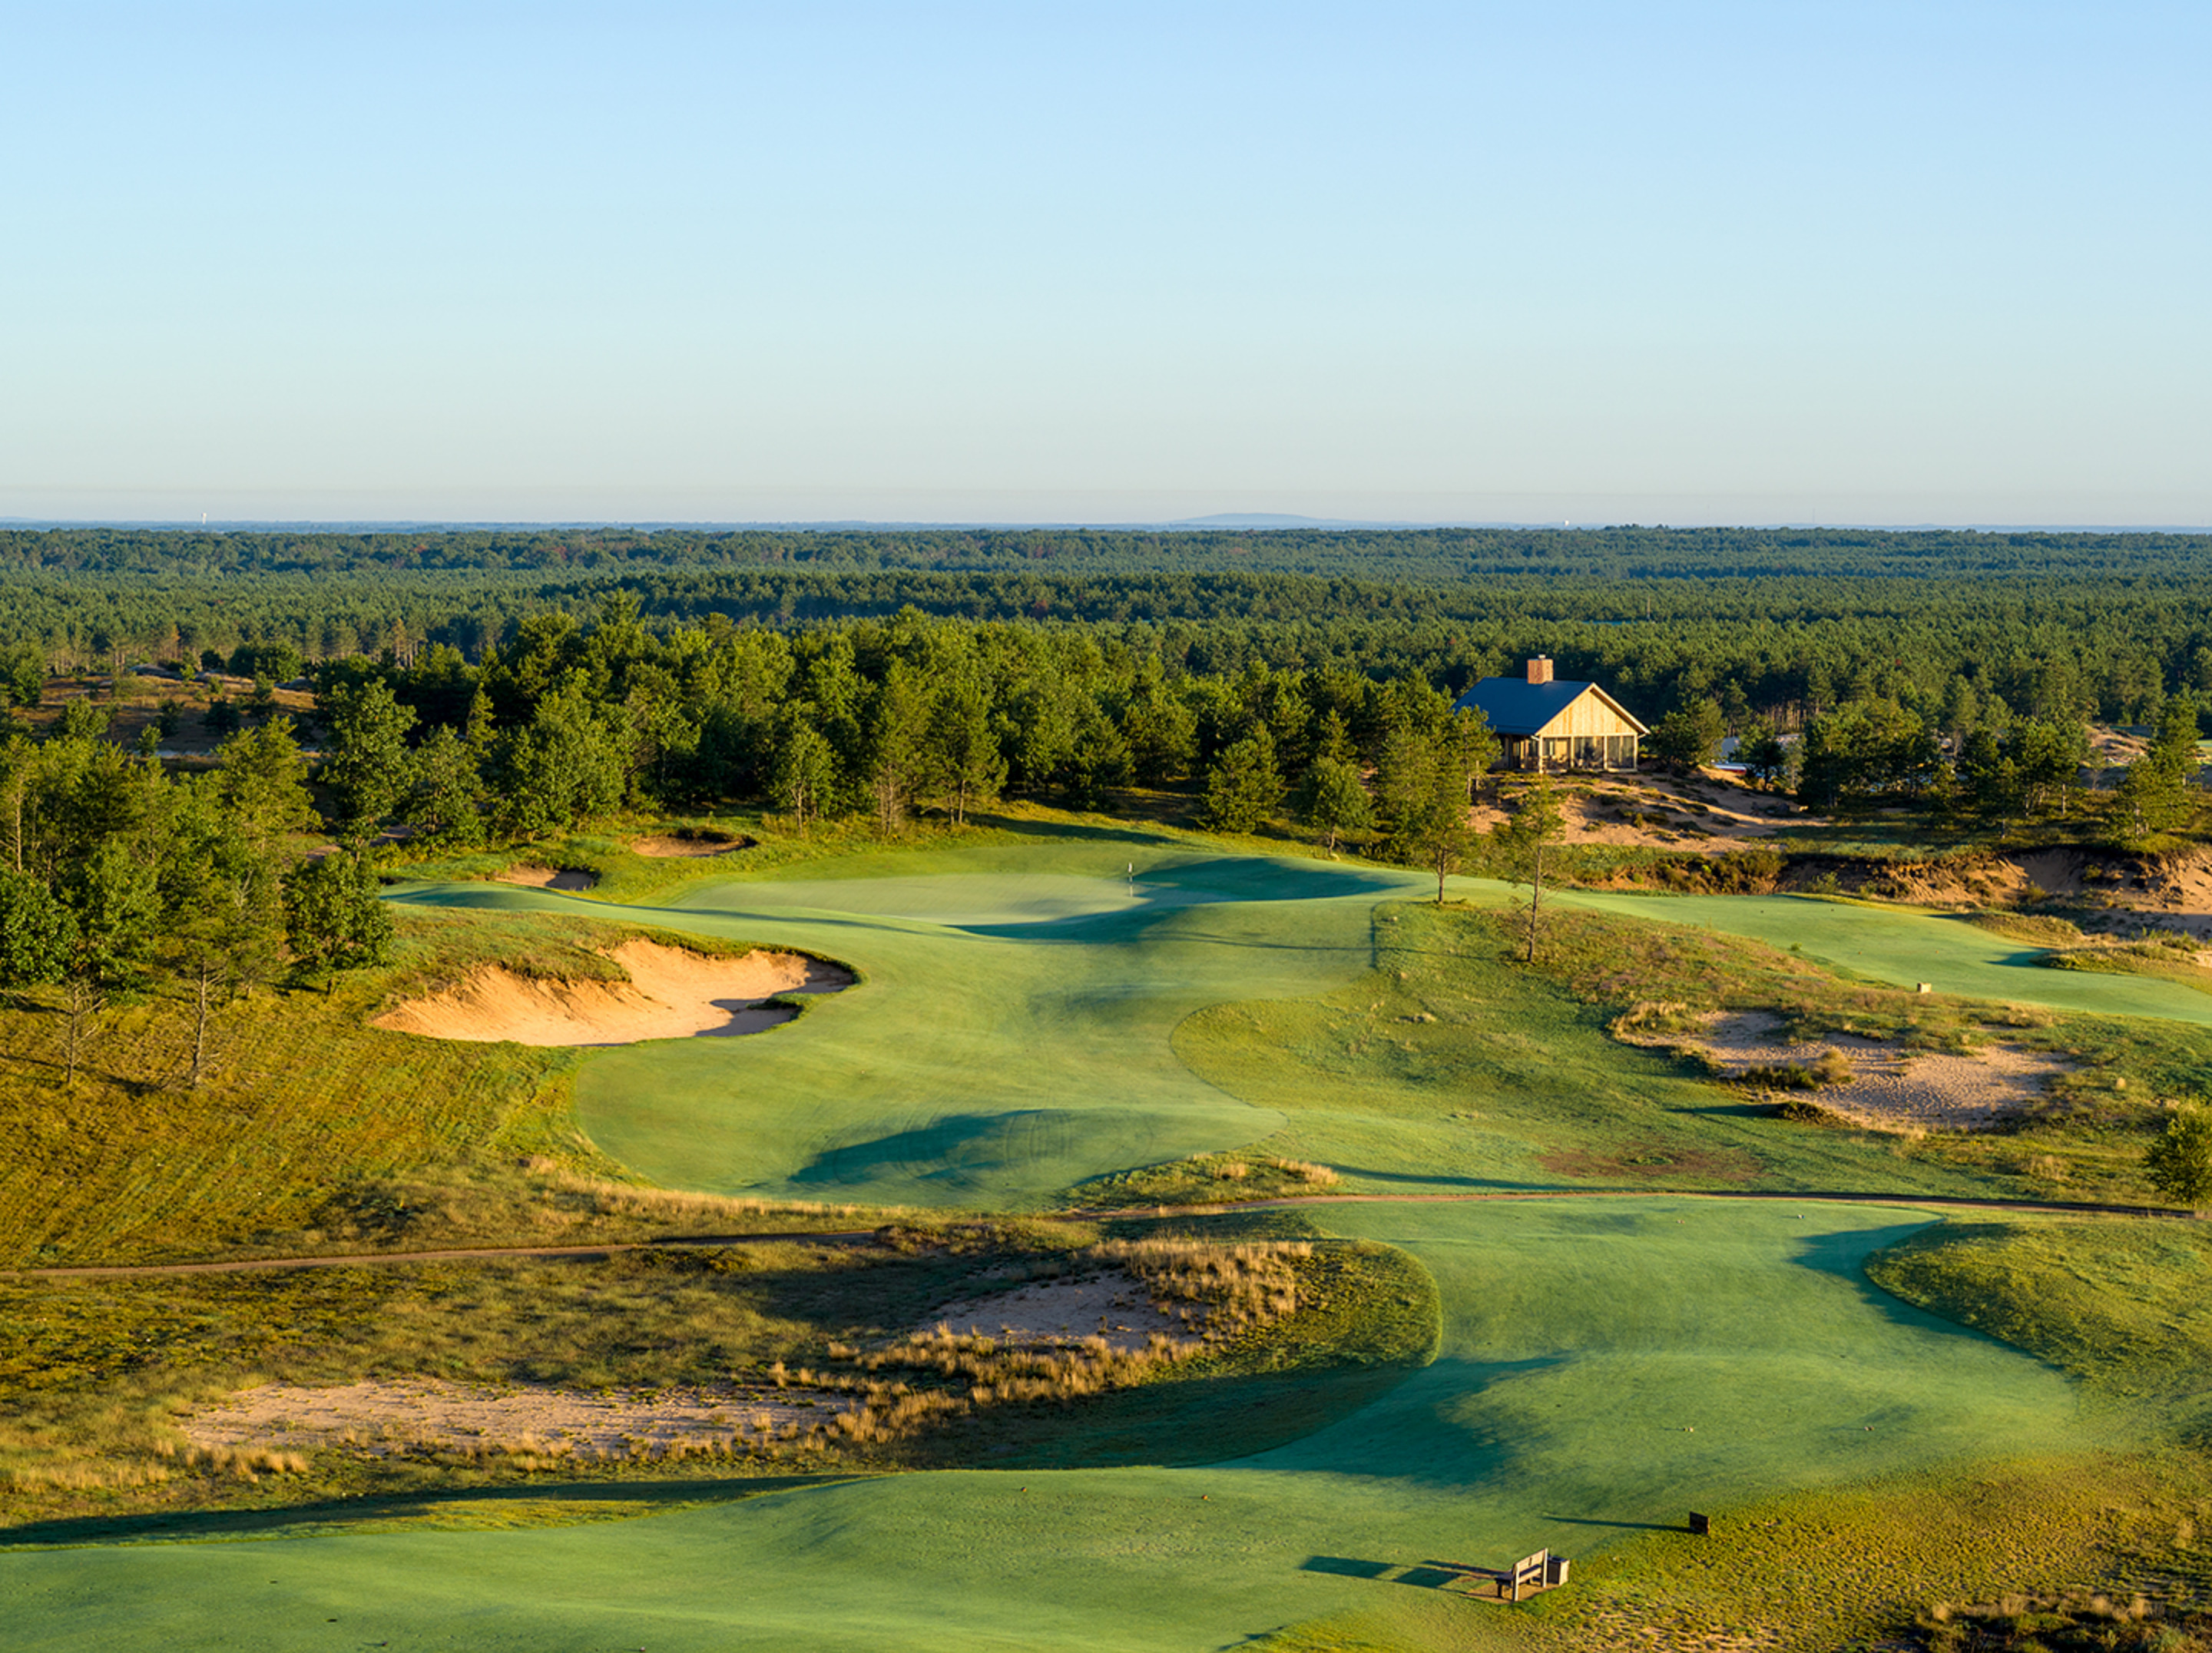 17th Hole, Sand Valley